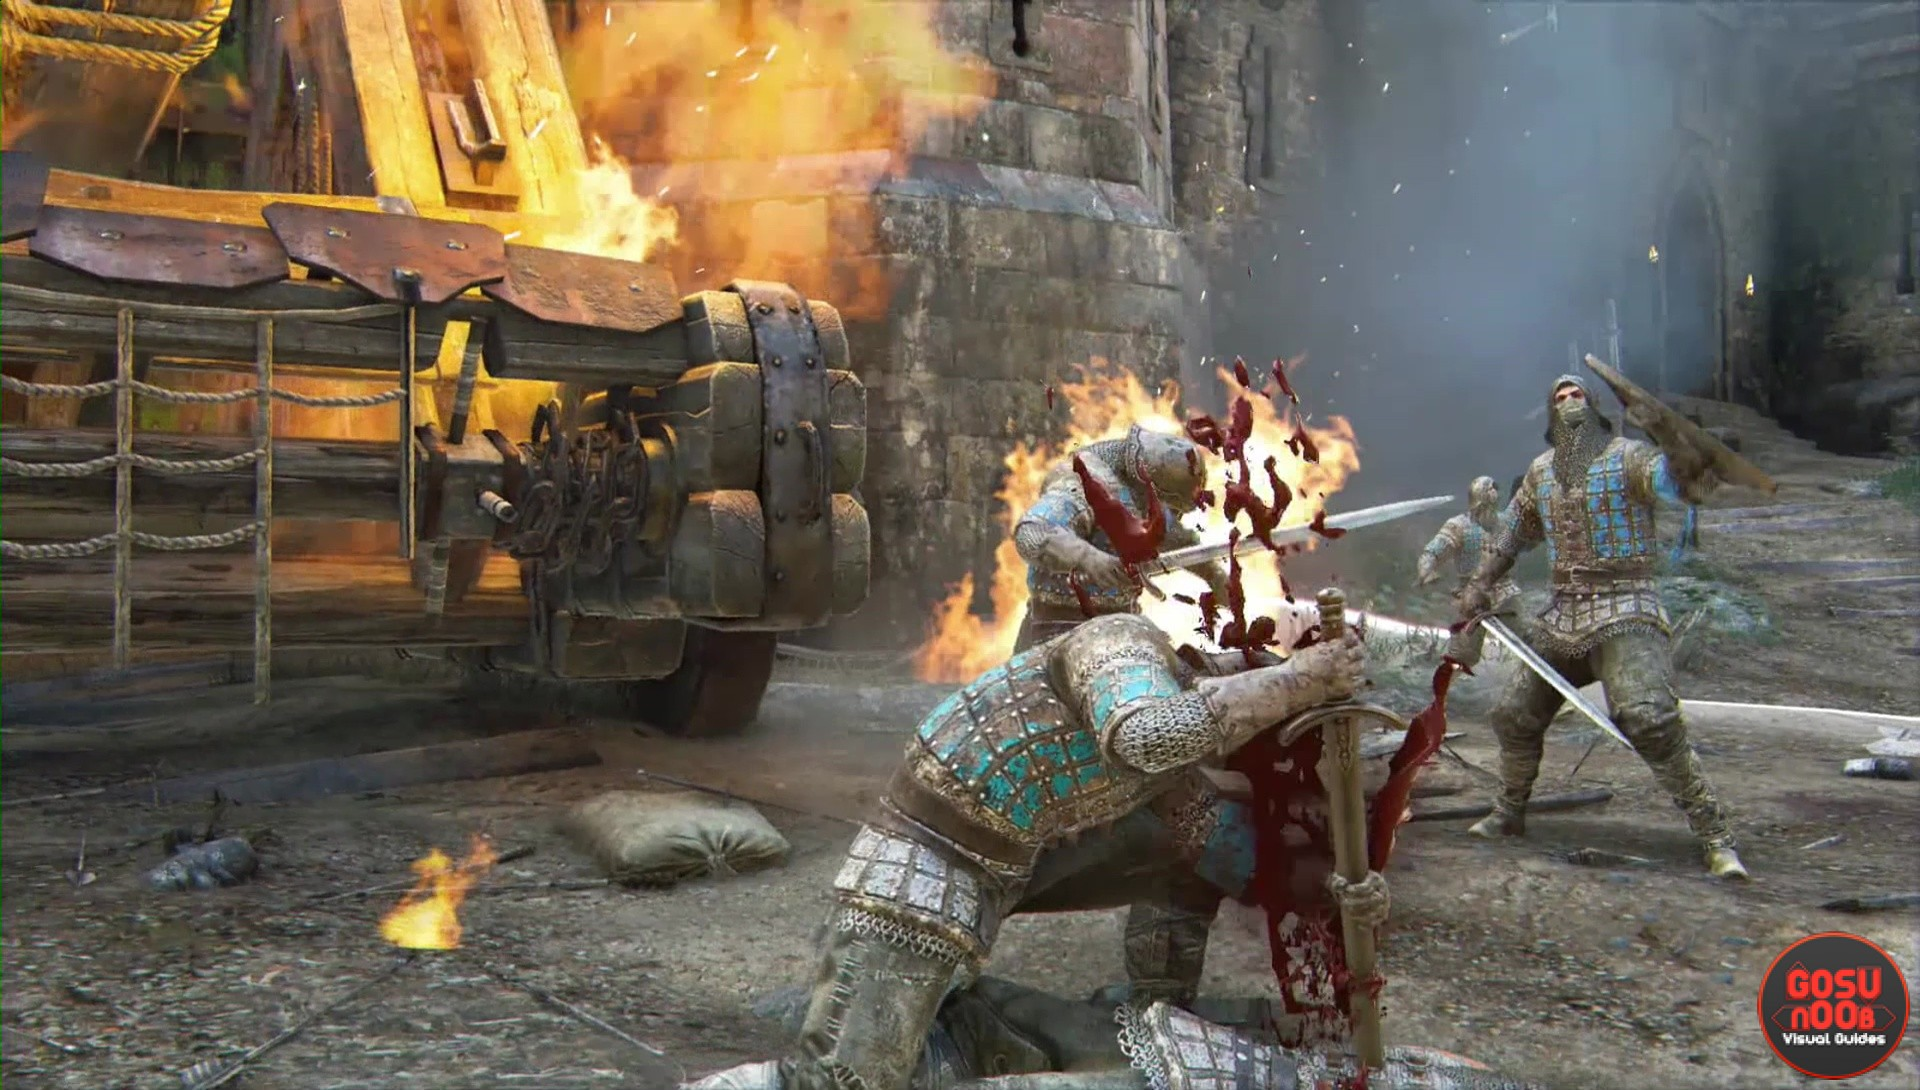 Magnificent idea matchmaking in for honor is bad